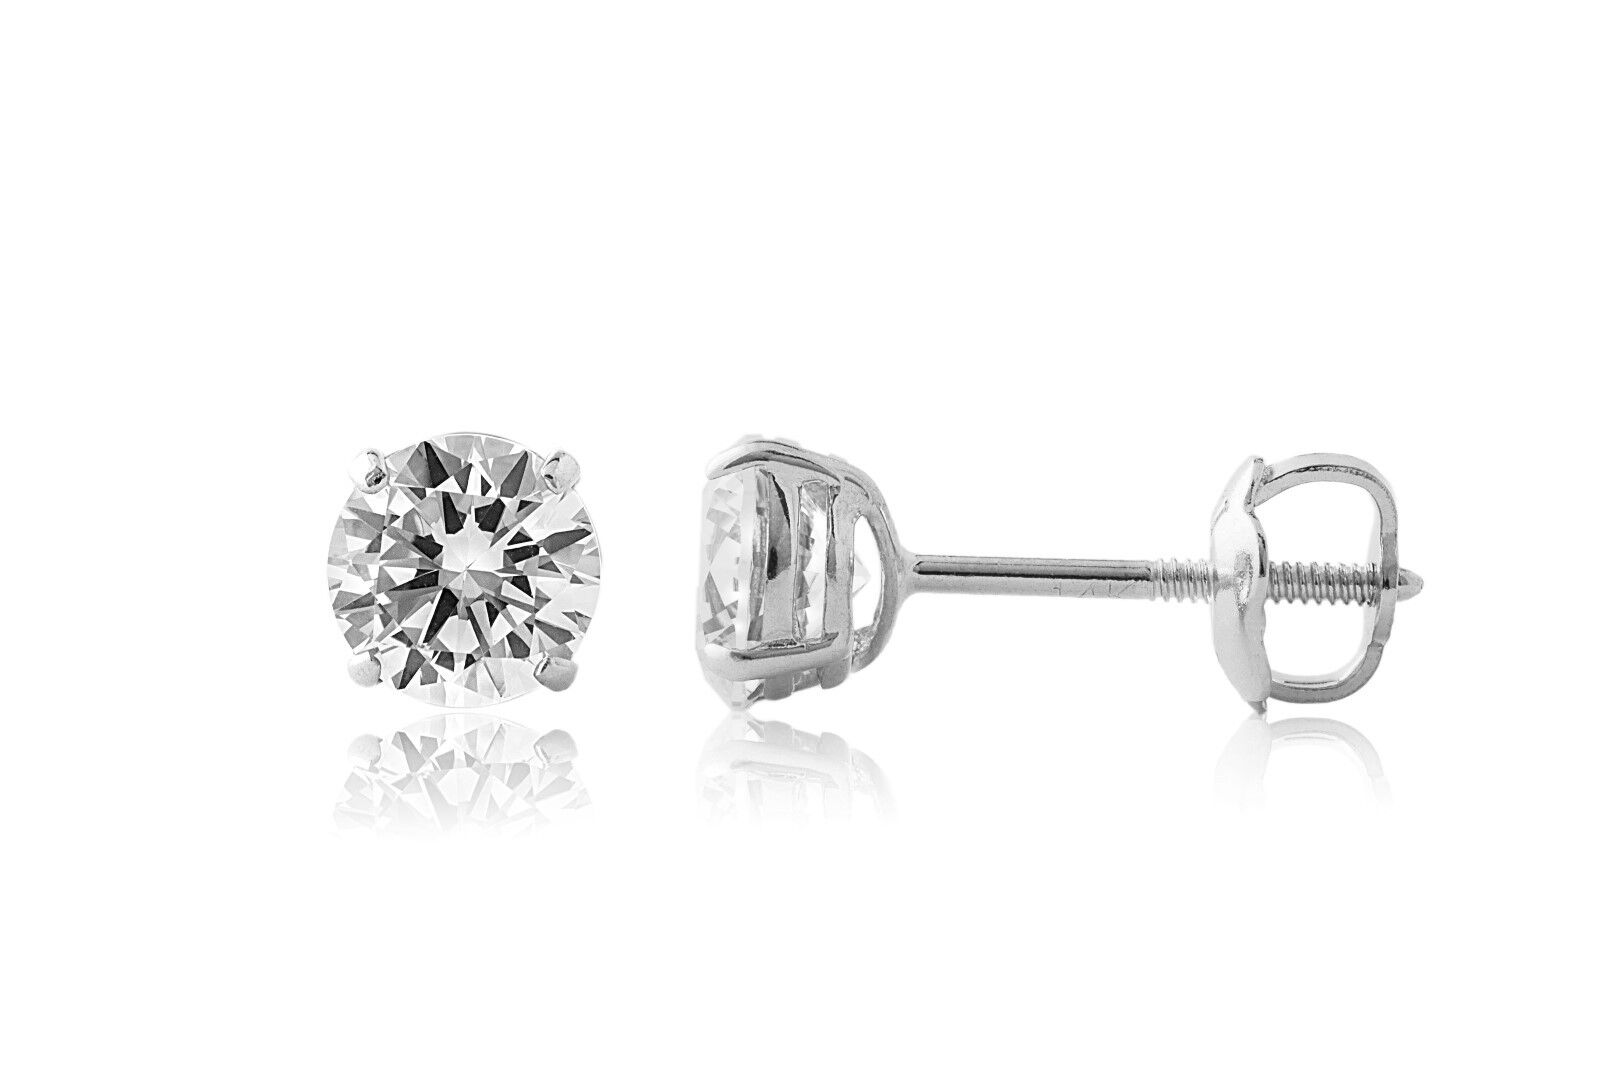 6 Ct Round Created Diamond Stud Earrings 14K Solid White Gold Basket Screw Back